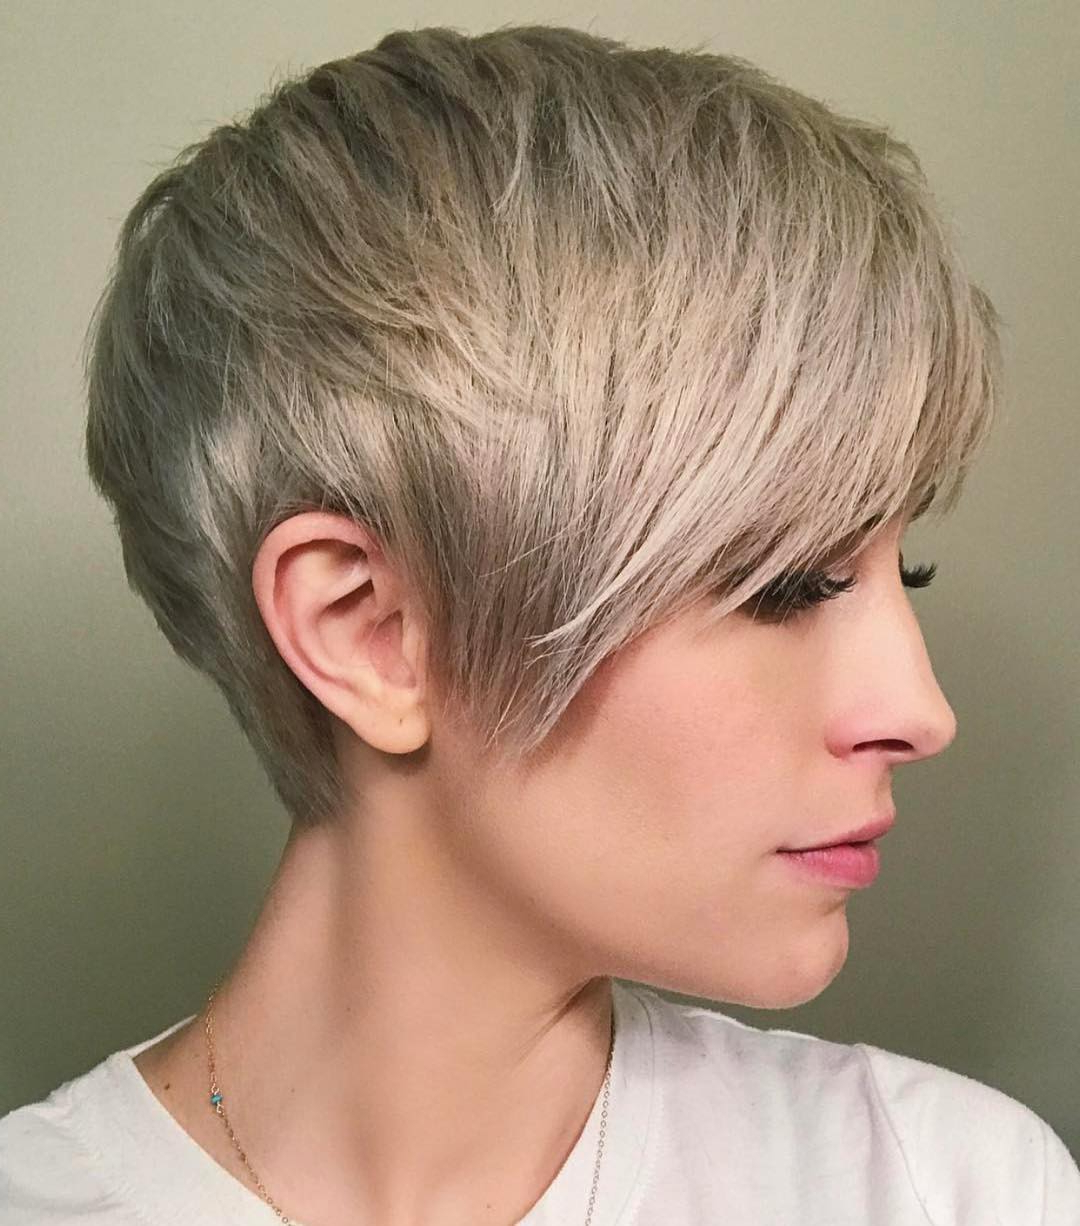 10 Best Short Straight Hairstyle Trends 2019 Pertaining To Long Ash Blonde Pixie Hairstyles For Fine Hair (View 1 of 20)